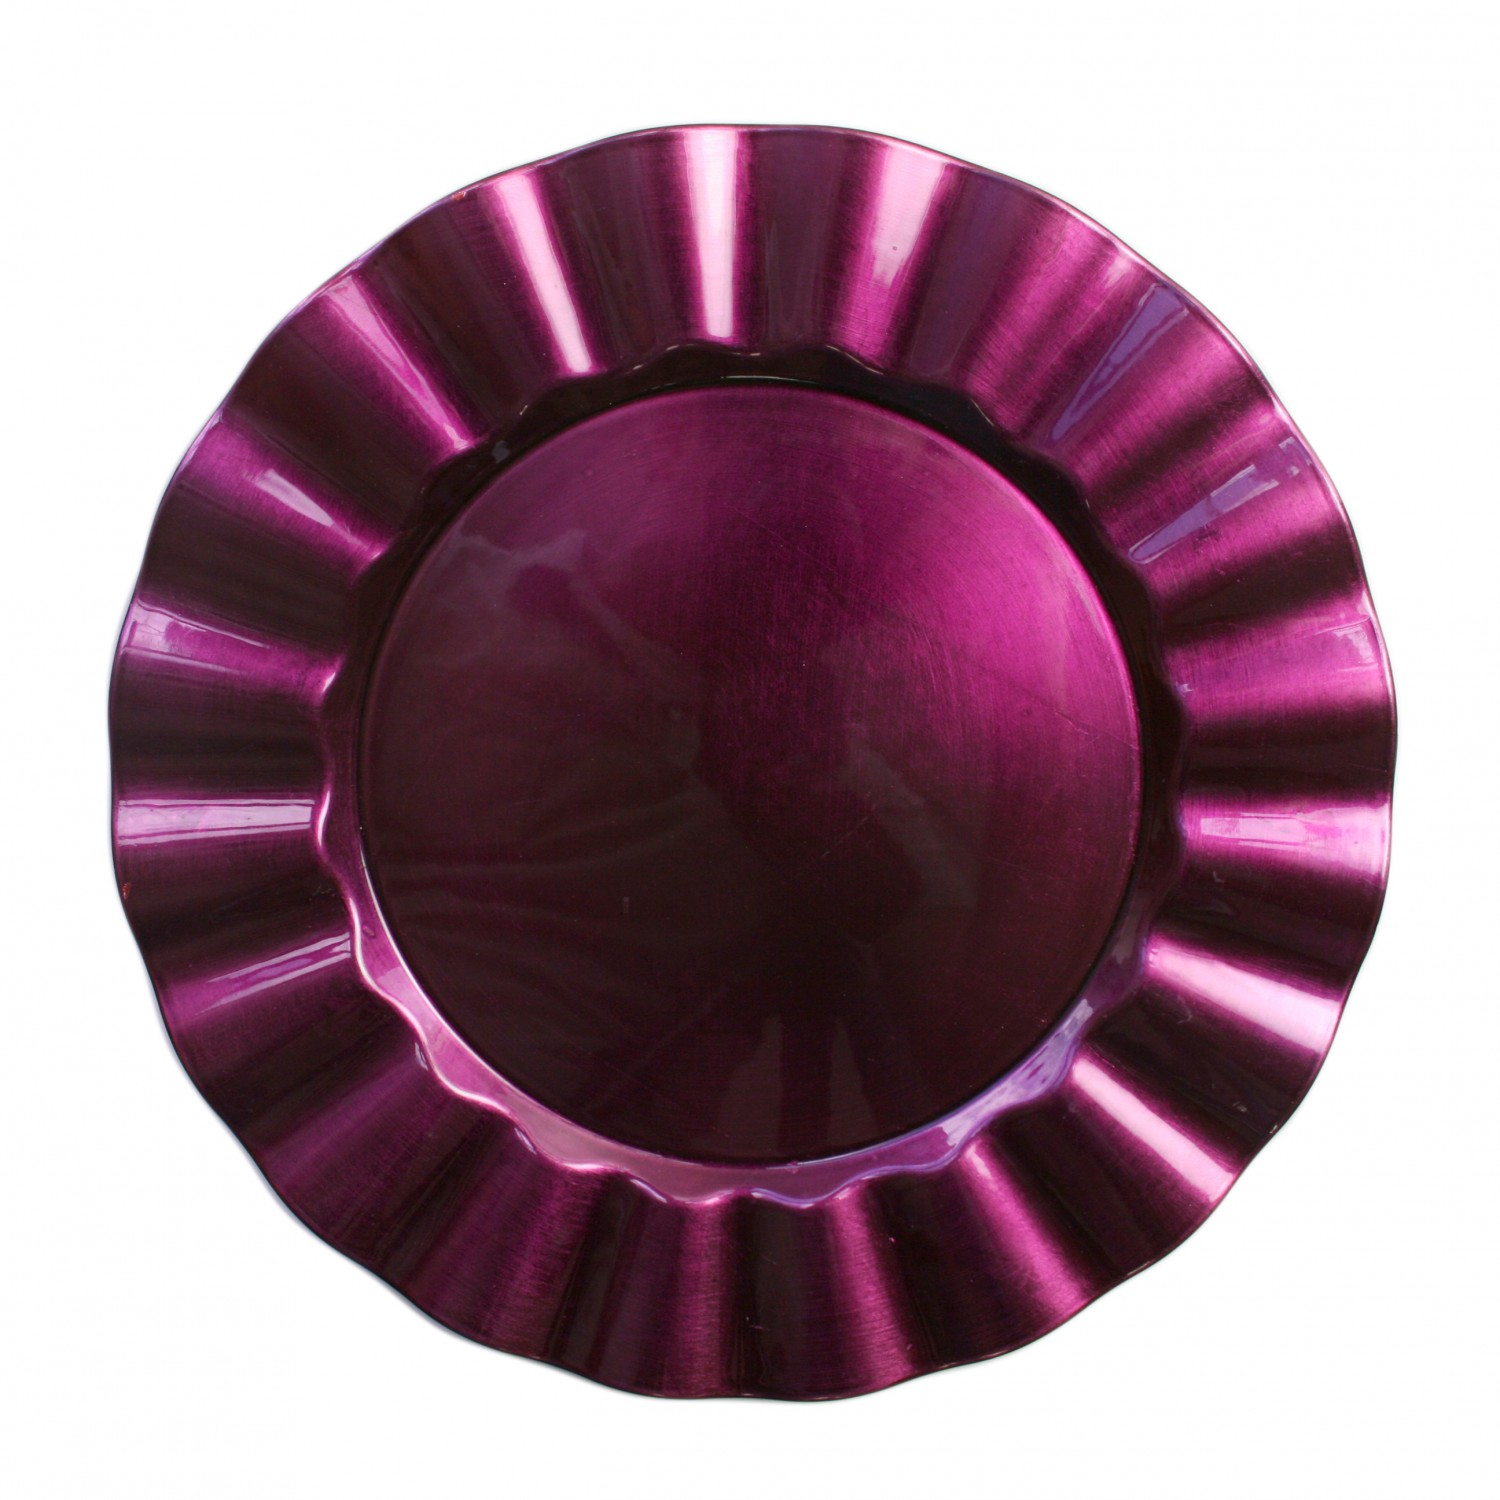 The Jay Companies 1183060 Round Purple Ruffled Rim Charger Plate 13""